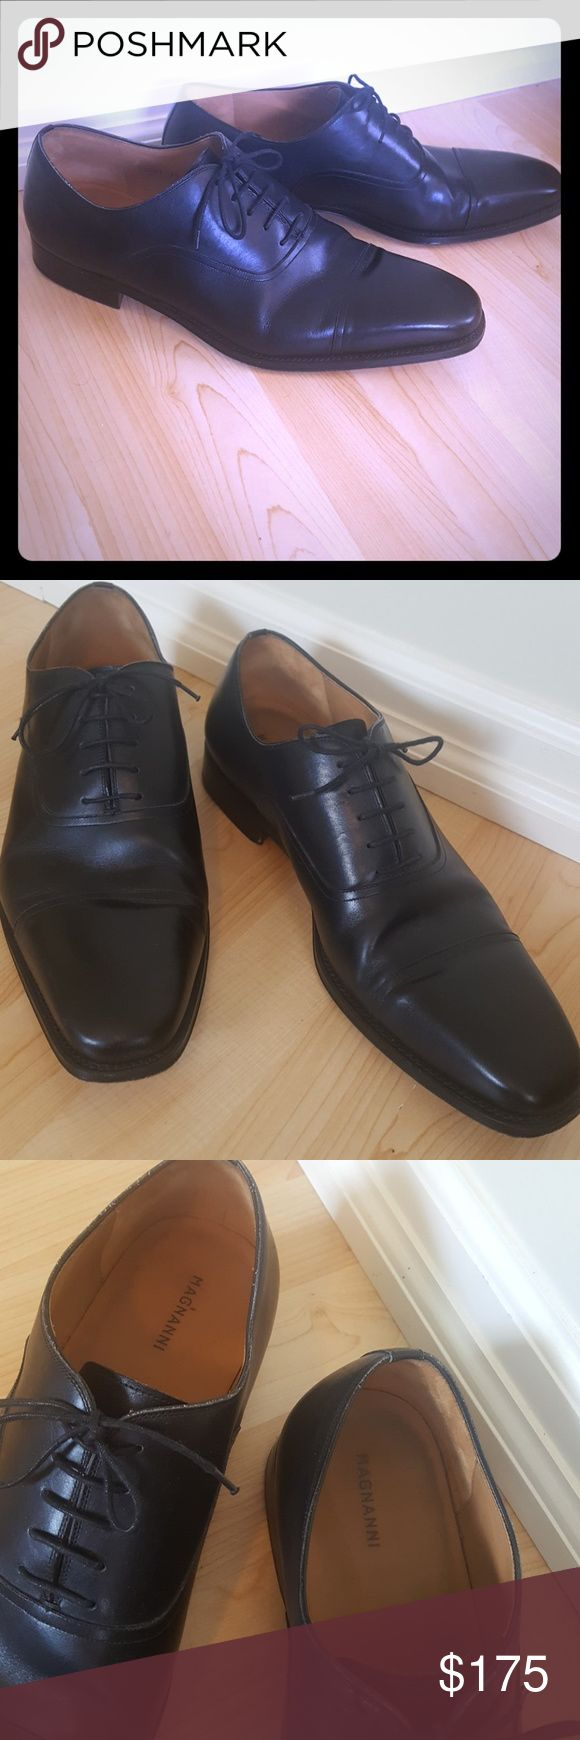 Magnanni Men's Oxford Dress Shoes Hand-made leather shoes from Spain by fami...